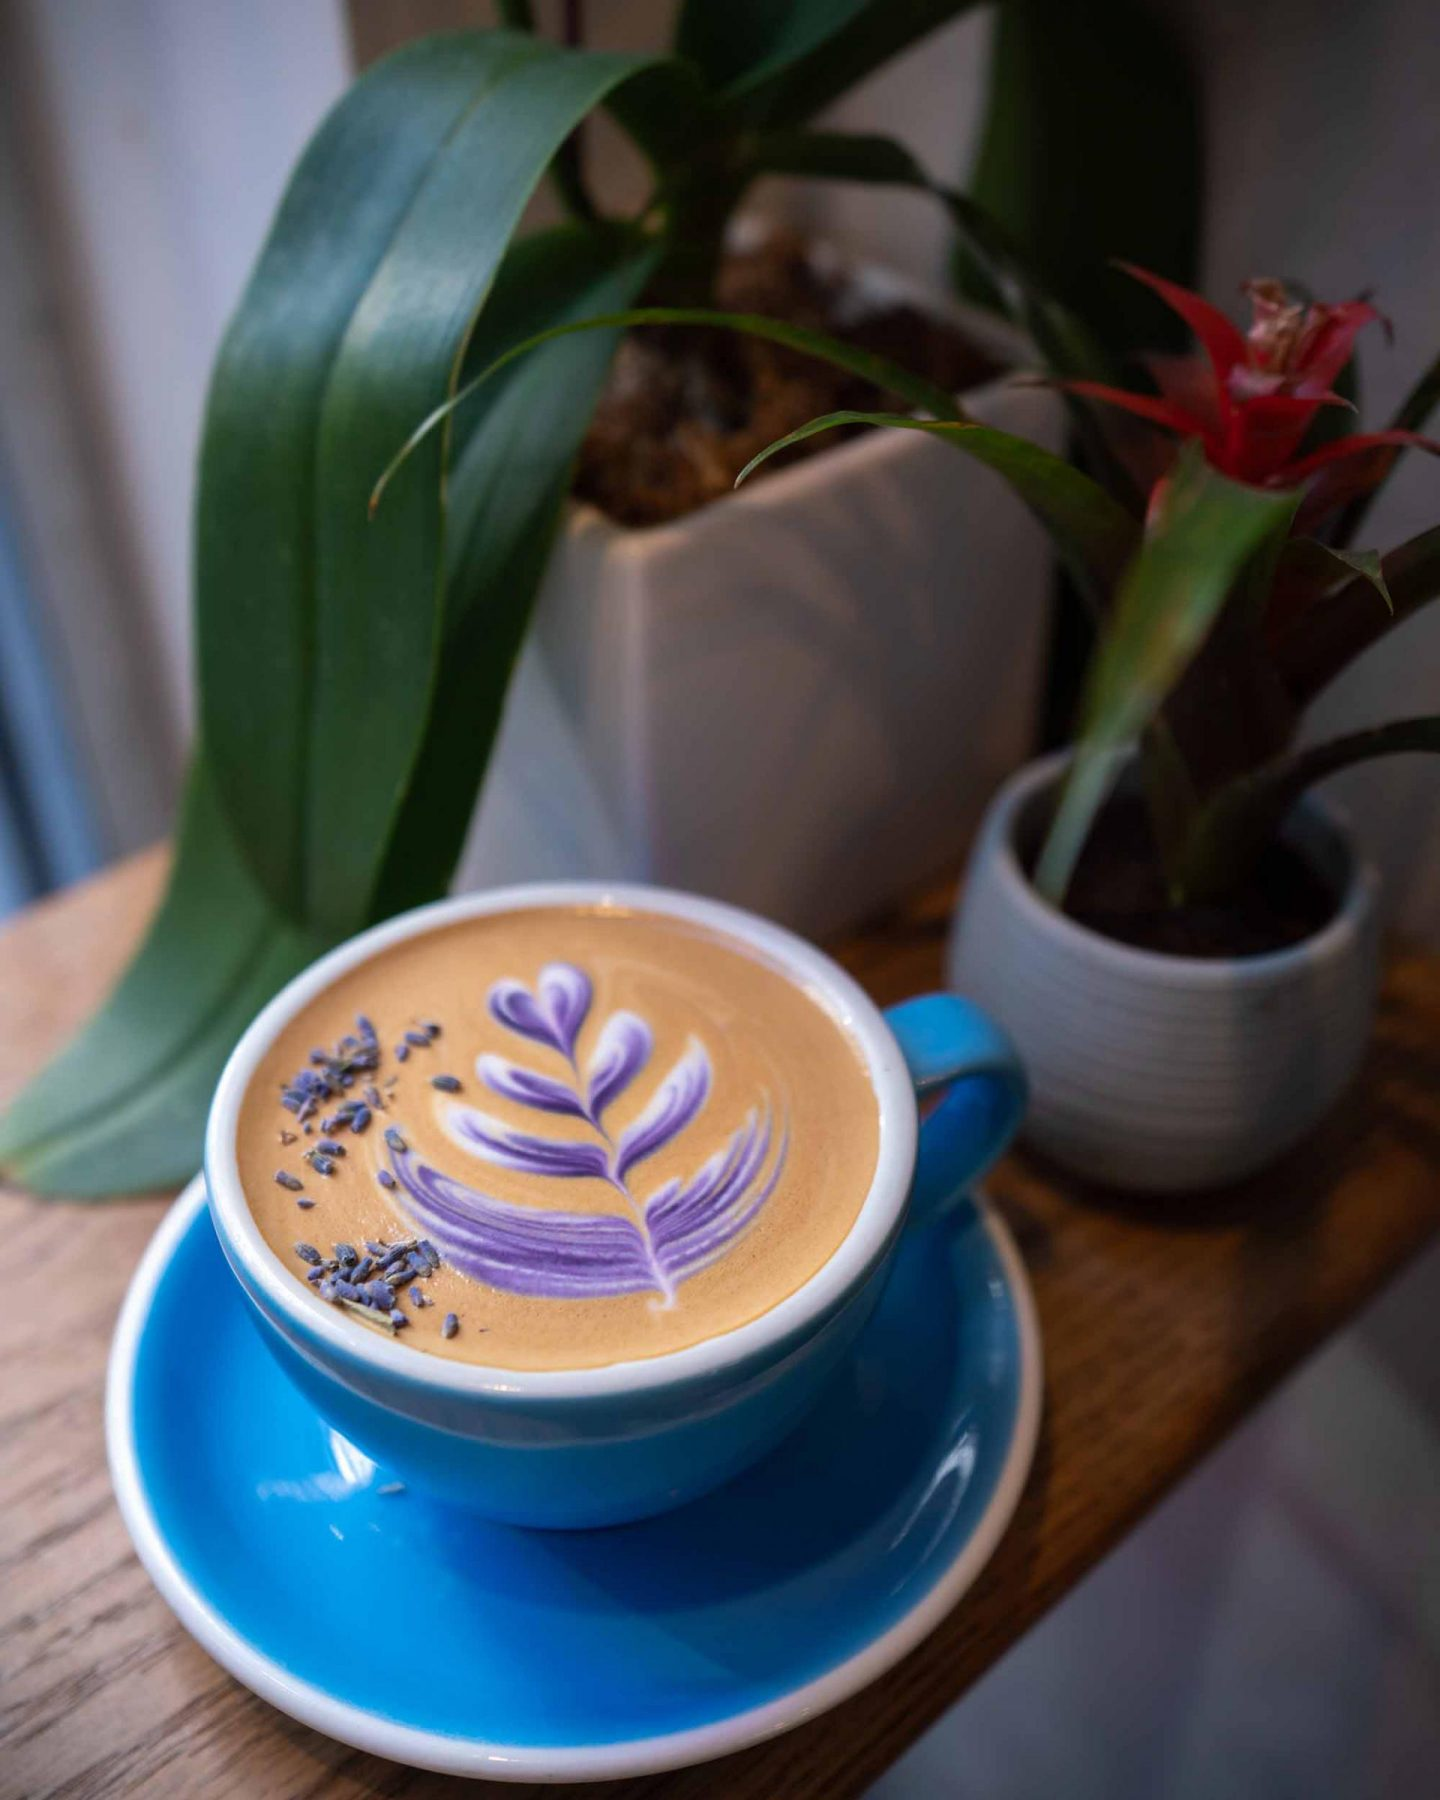 Lavender latte at Remi Flower and Coffee.